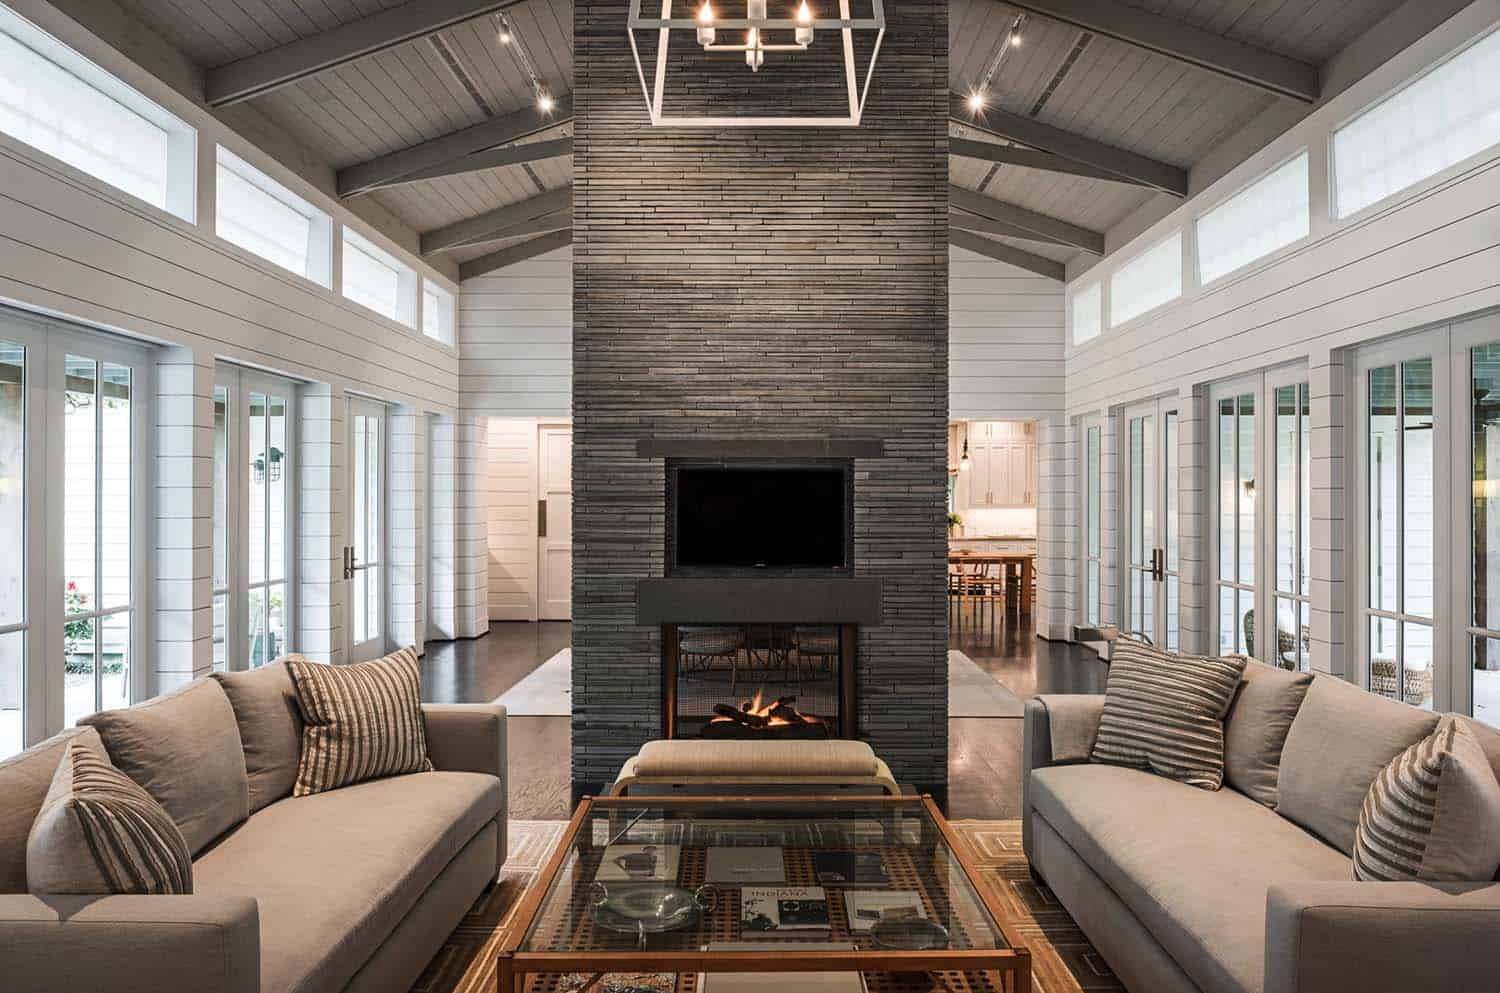 Farmhouse Style Home-Dillon Kyle Architects-04-1 Kindesign